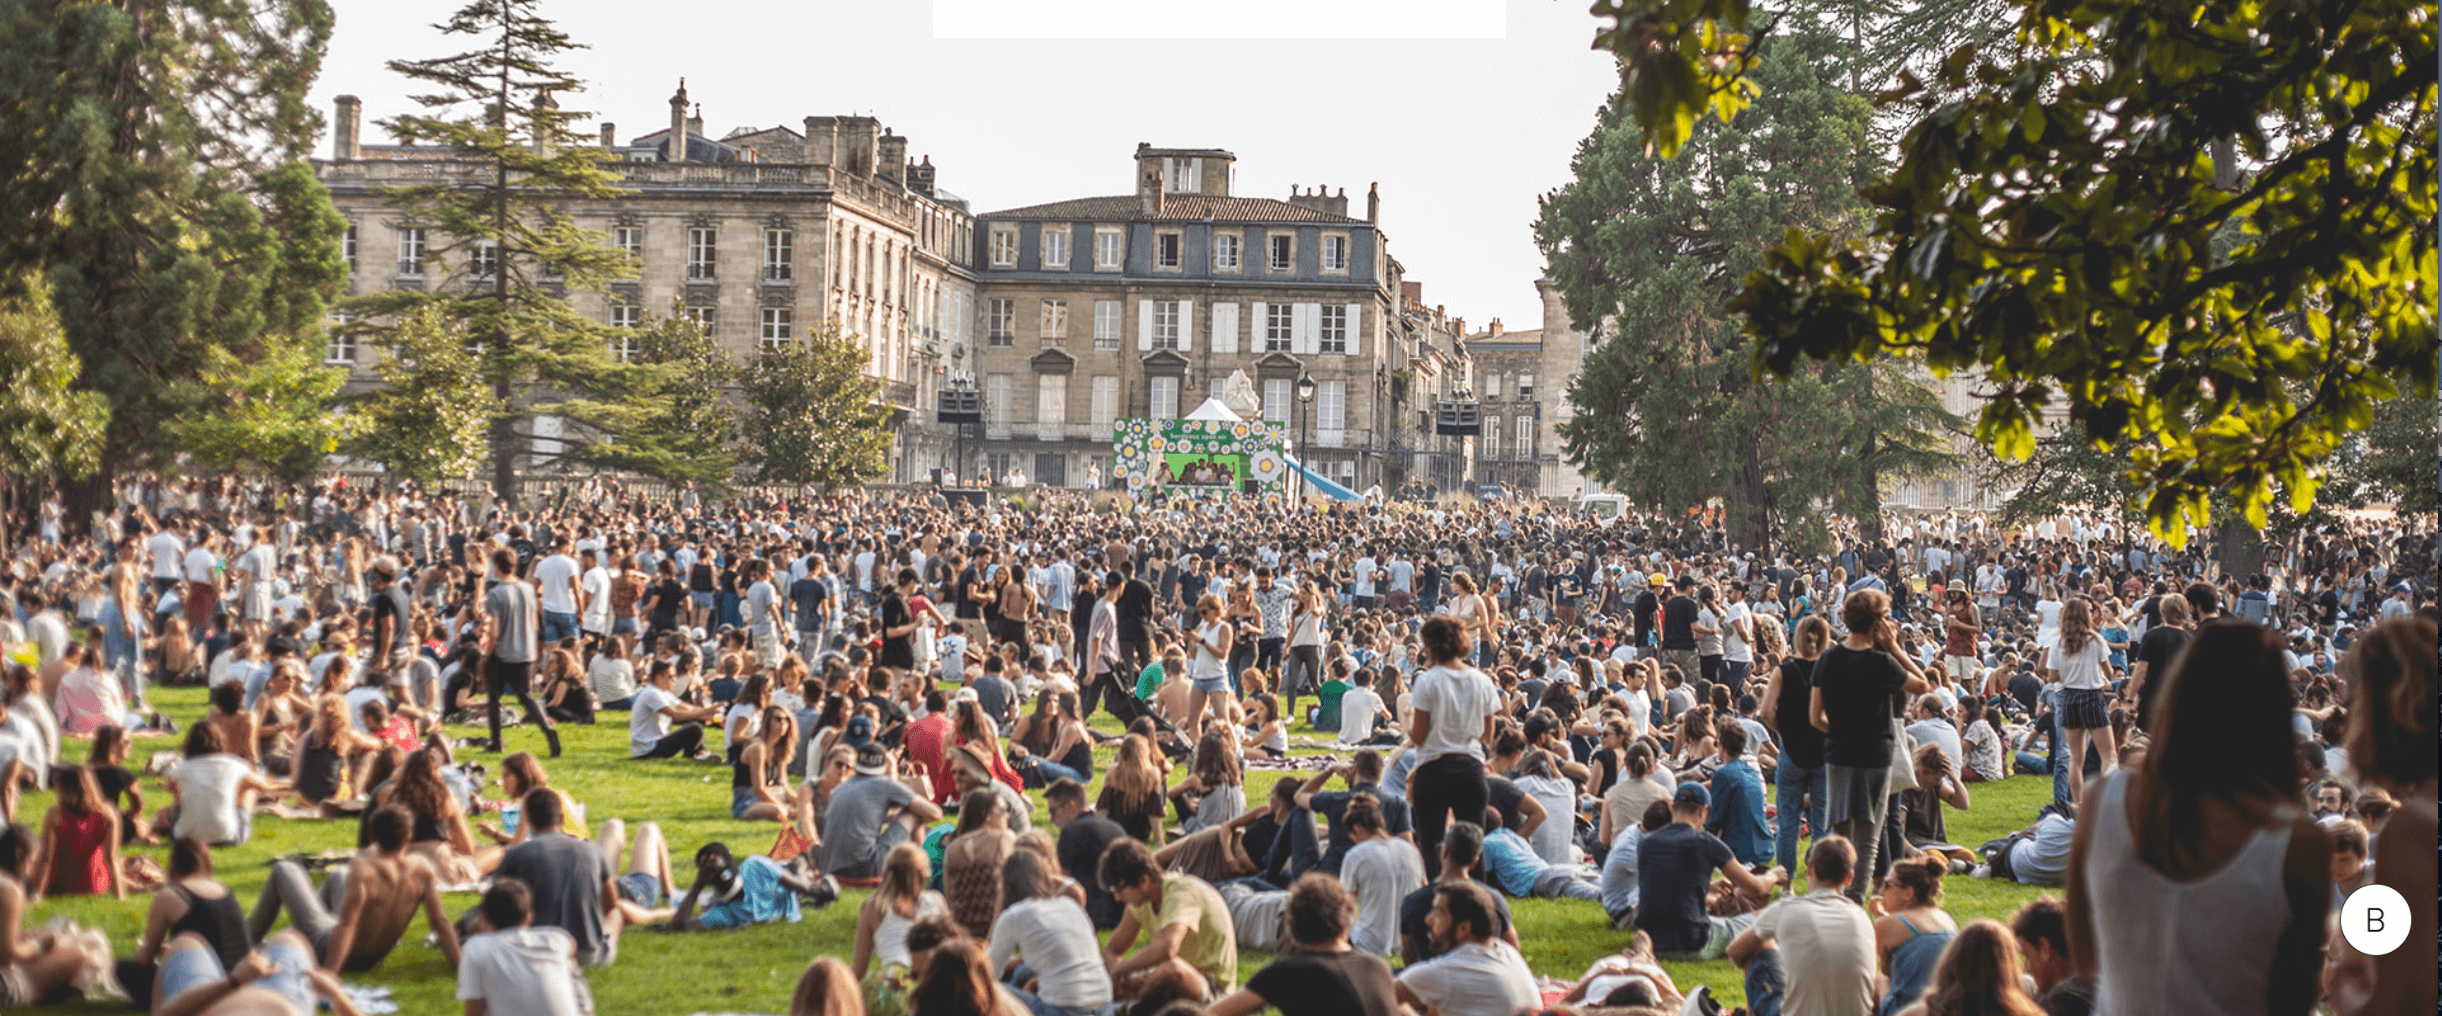 bordeaux-open-air-dure-vie.jpg